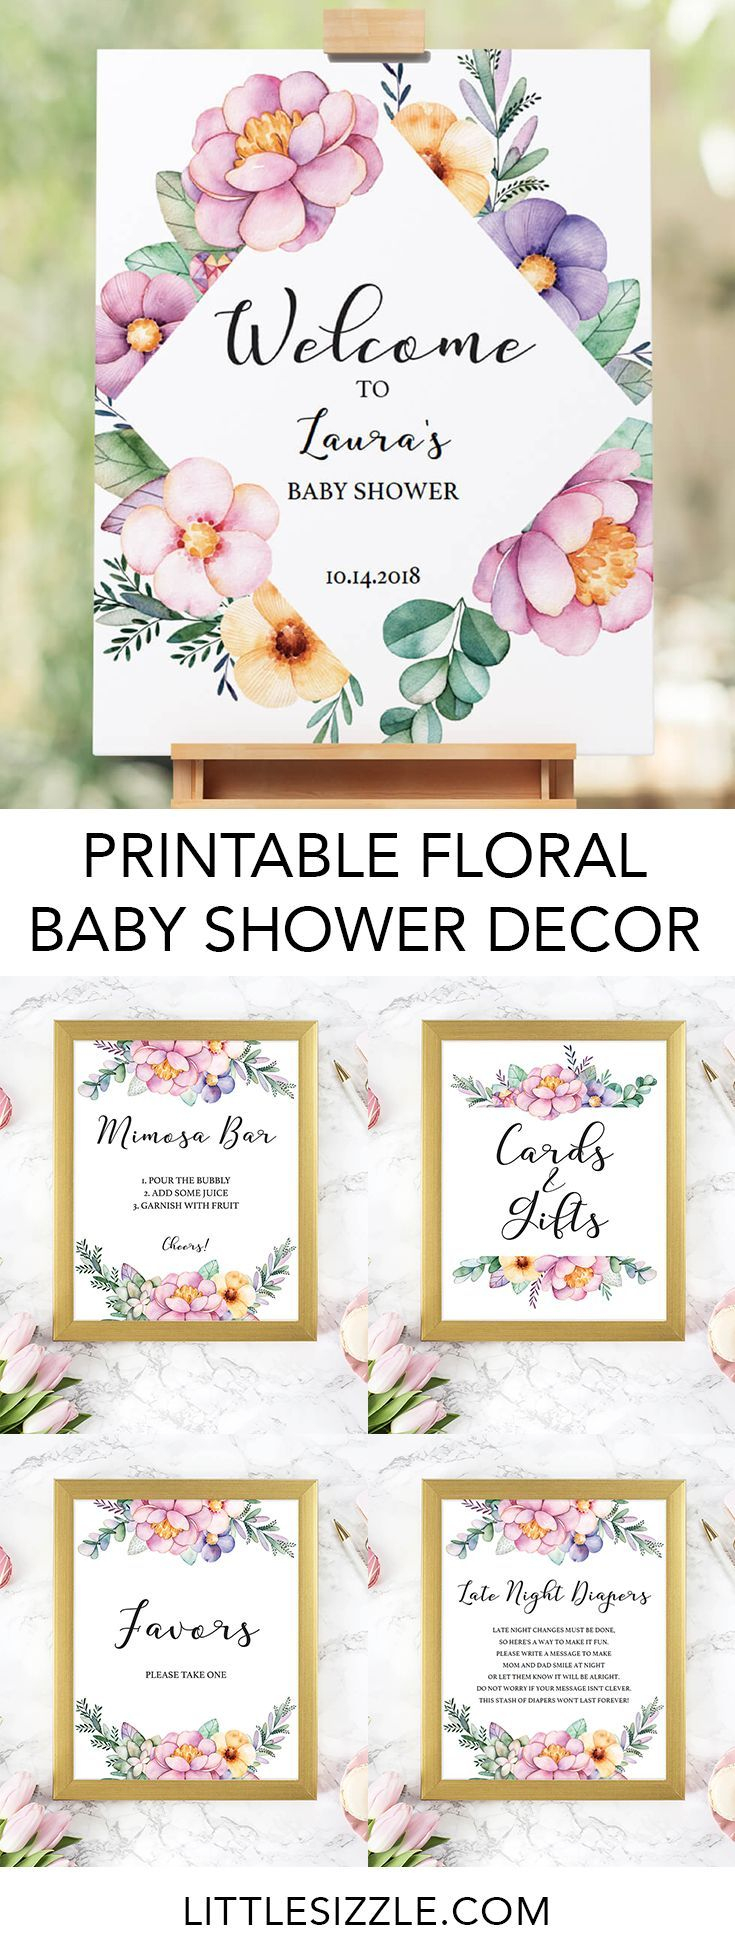 Printable Baby Shower Floral Decorations | Baby Showers & Gender - Free Printable Baby Shower Table Signs